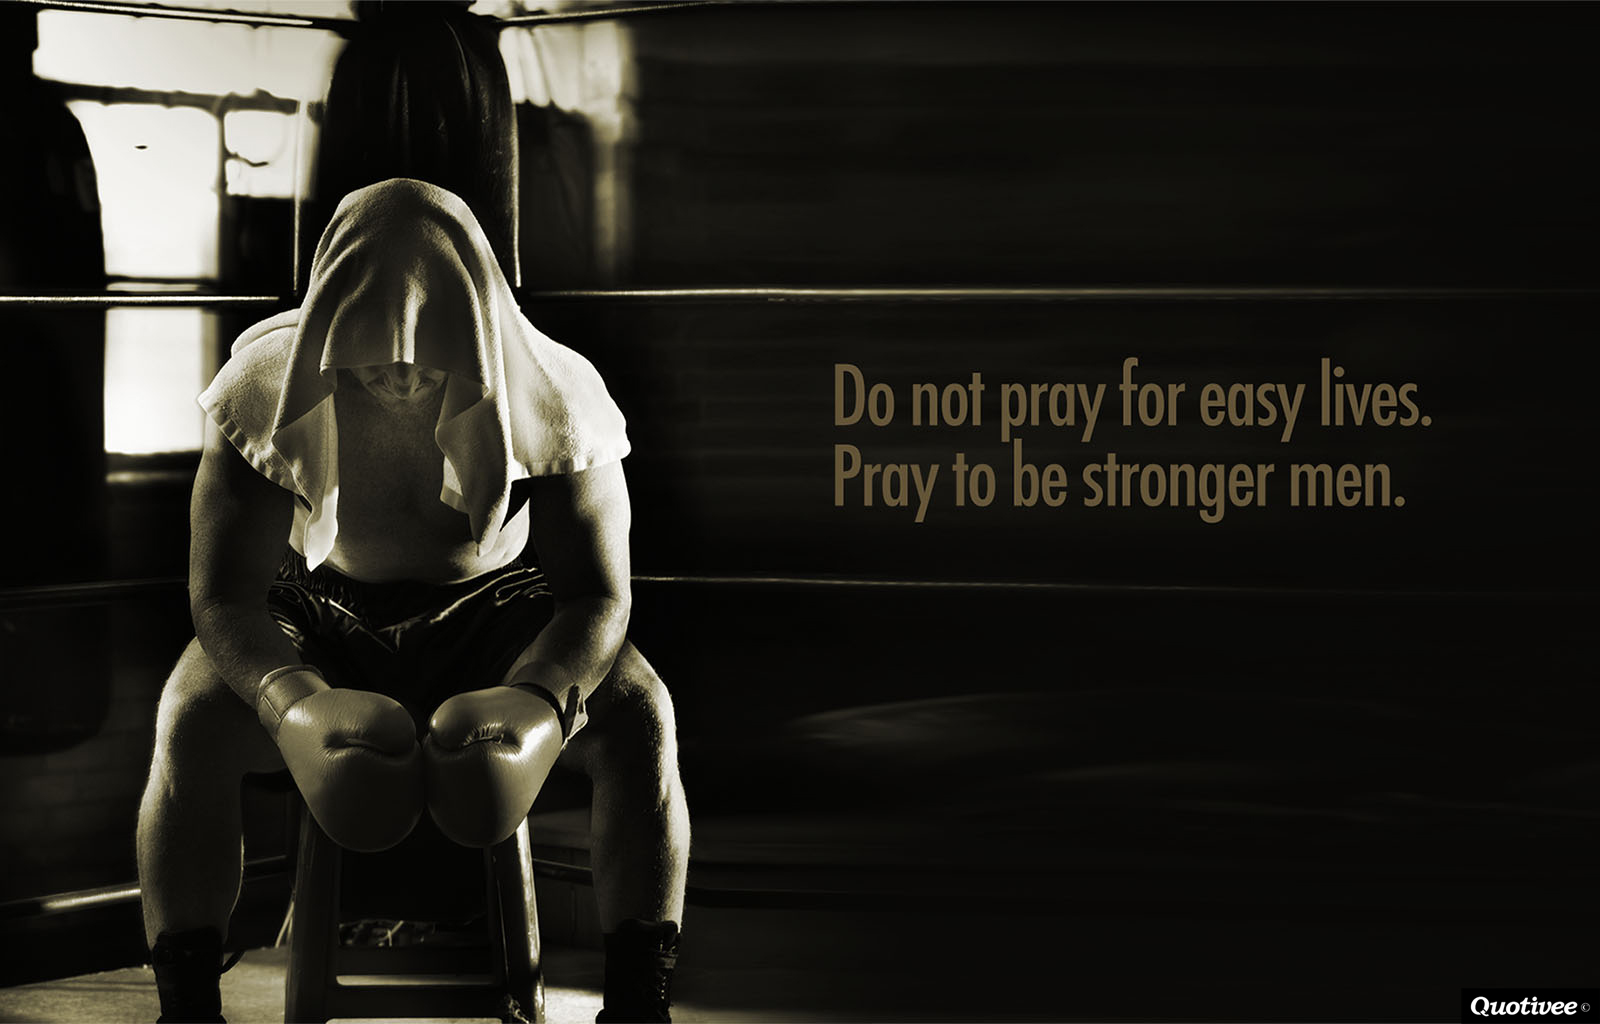 Do Not Pray For Easy Lives - Inspirational Quotes  Quotivee